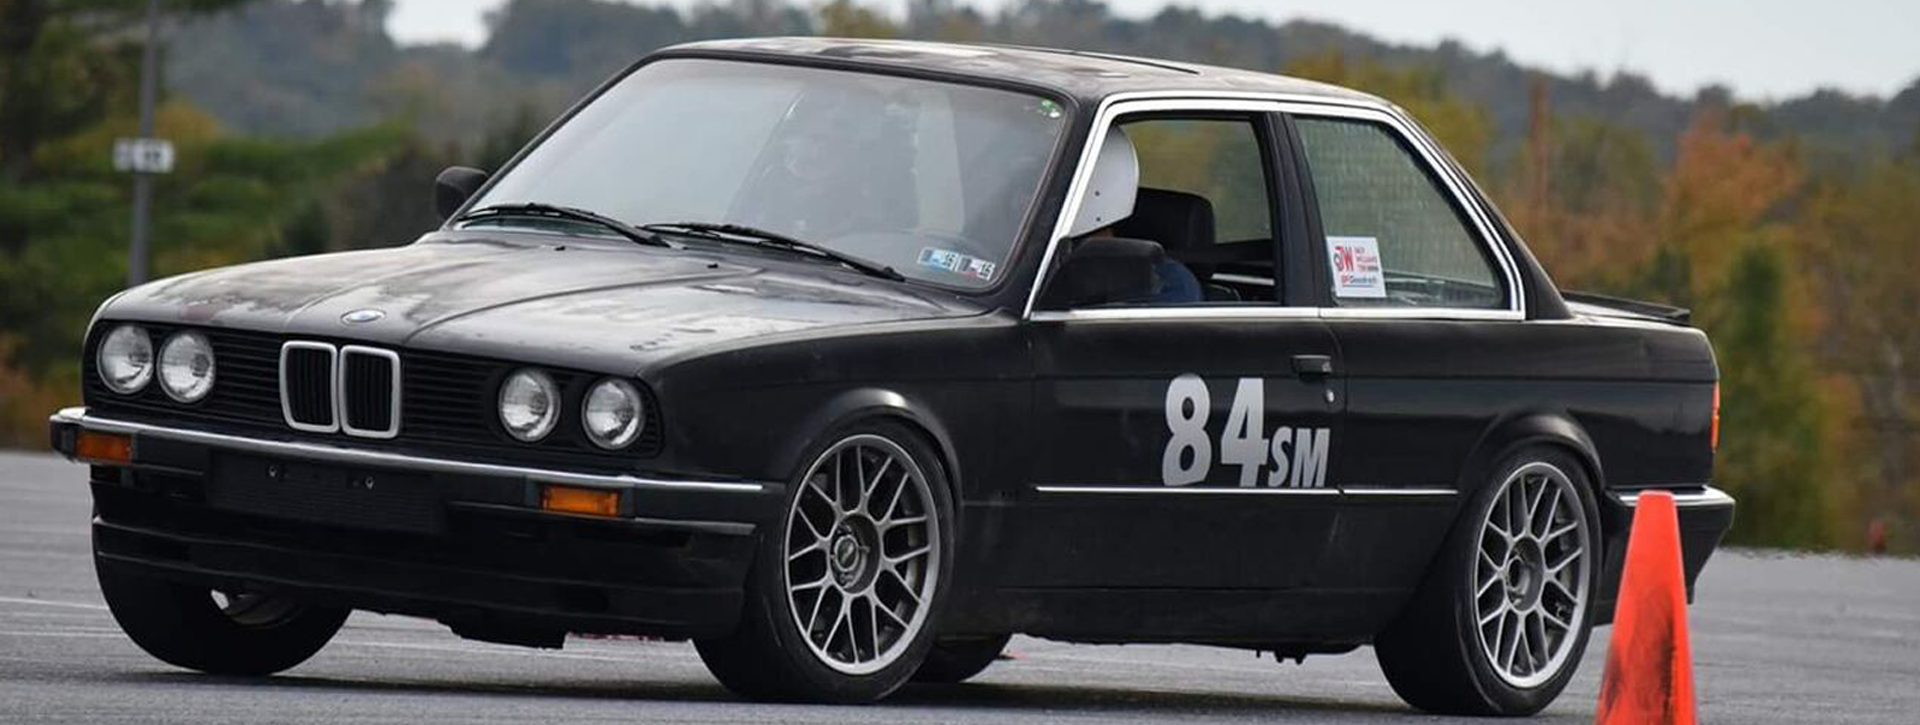 <p>Name: Brian Holmes From: Newport, PA Runs: Currently, Brian runs autocross. He is hoping to get into the rallycross and time trial events in the next year or two. Drives: Currently, Brian runs a 1984 BMW 318/E30 under number 84 in SM. Member since: 2015 Brian&#8217;s first exposure to running autocross was in the [&hellip;]</p>